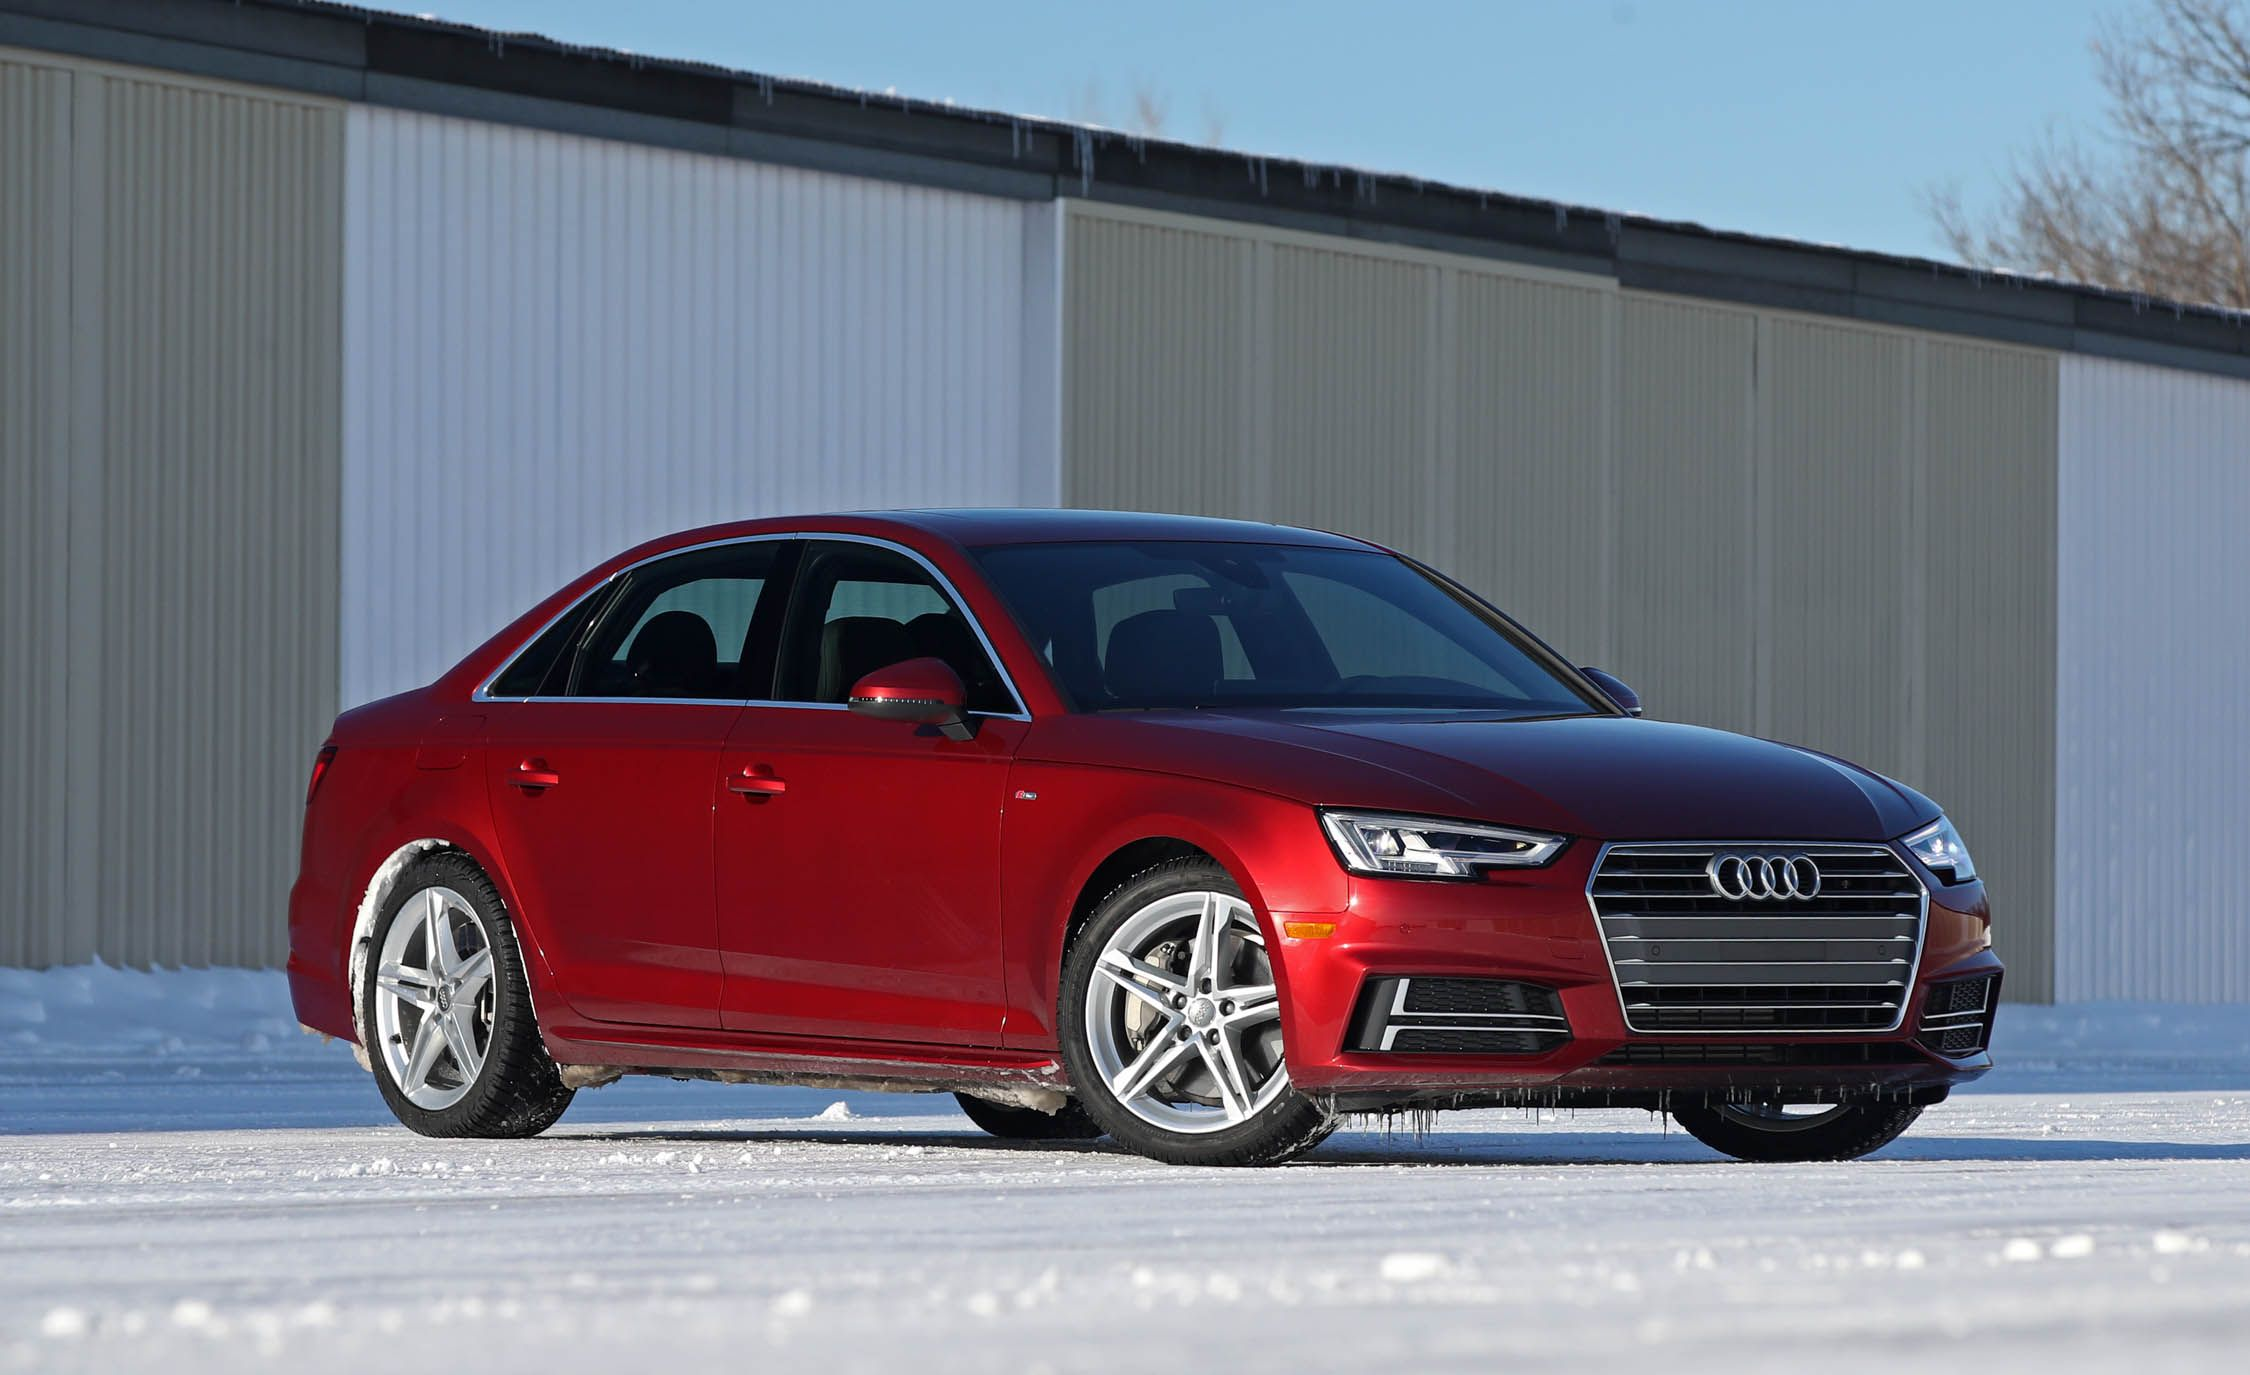 Audi A Reviews Audi A Price Photos And Specs Car And Driver - Audi a4 specs